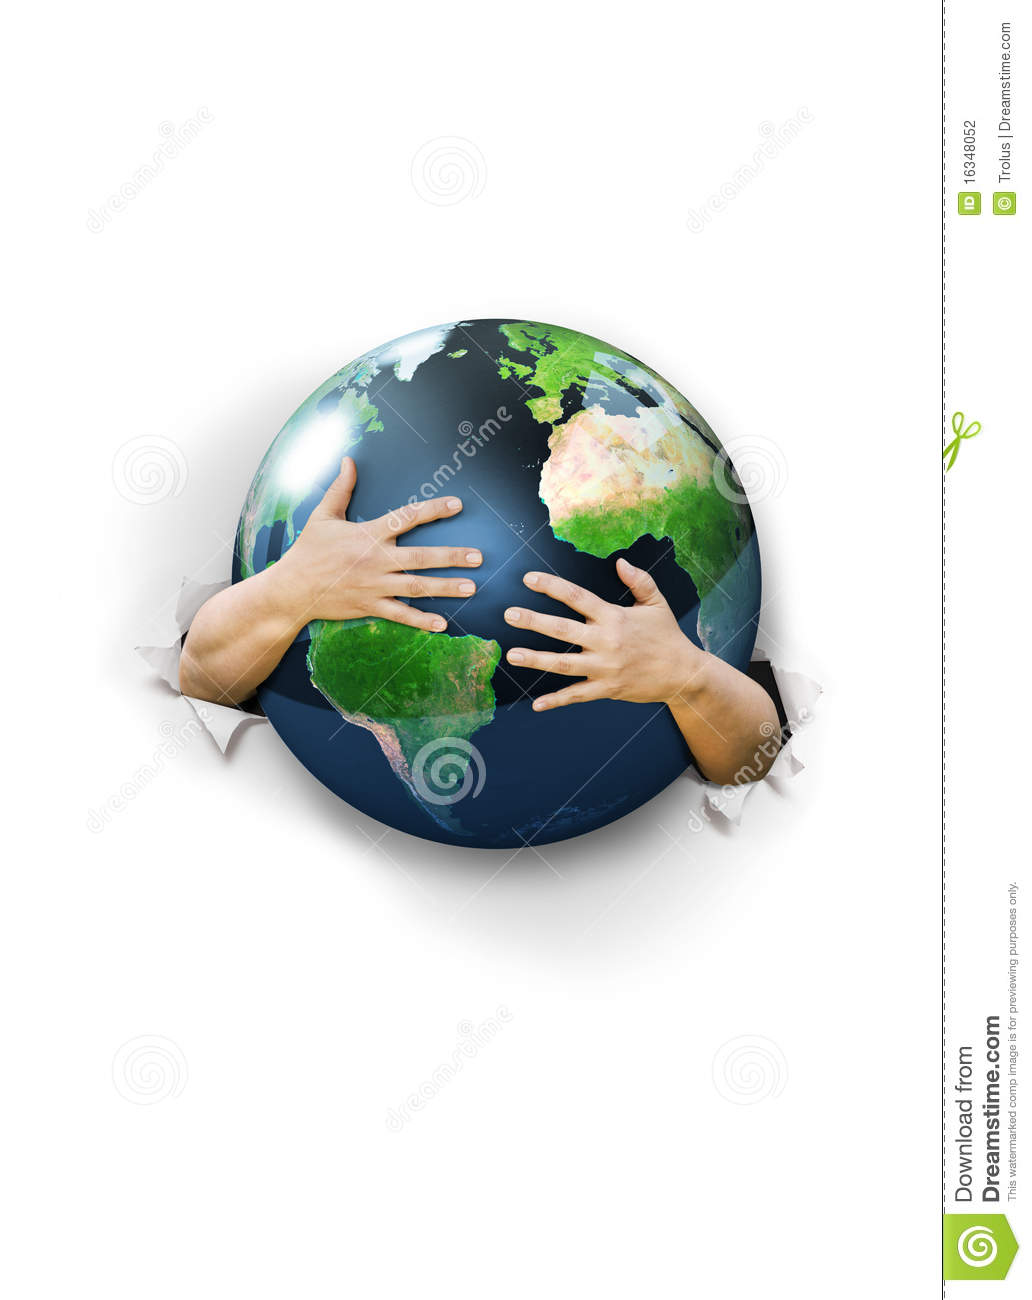 https://i1.wp.com/thumbs.dreamstime.com/z/hug-earth-16348052.jpg